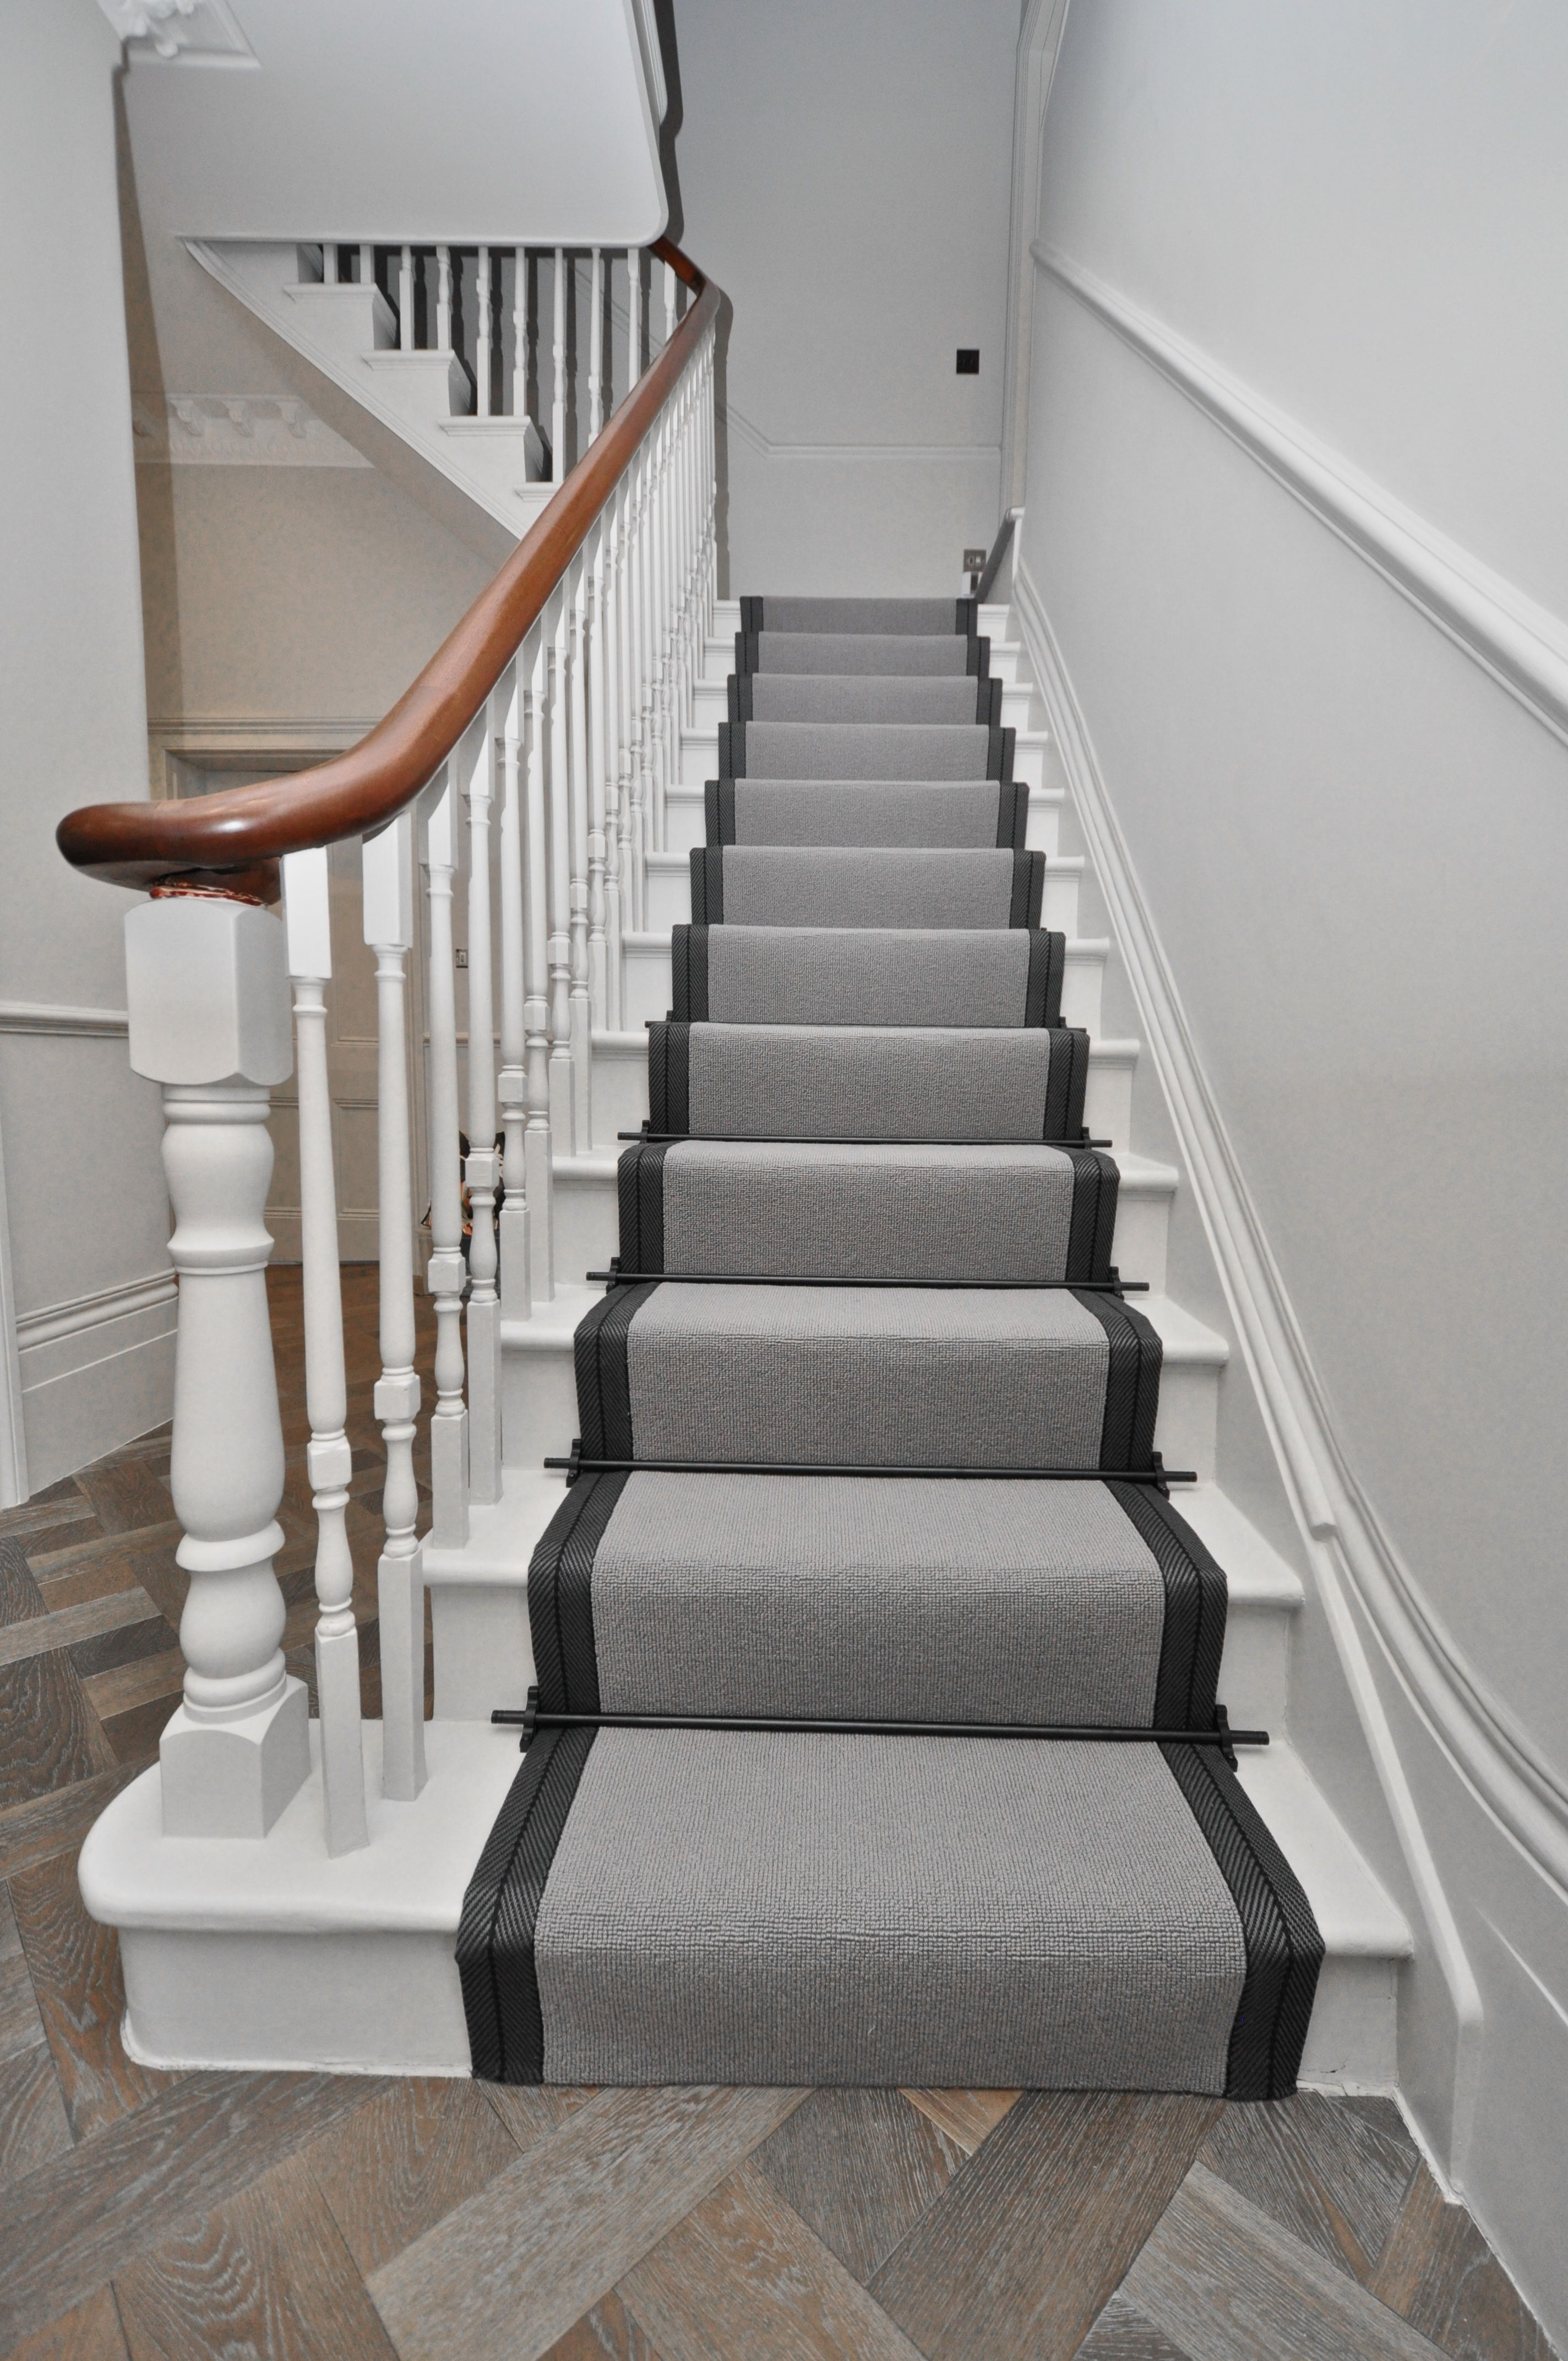 Best 5 022 Wool Stair Runners Bowloom Wool Carpet Bound With 400 x 300